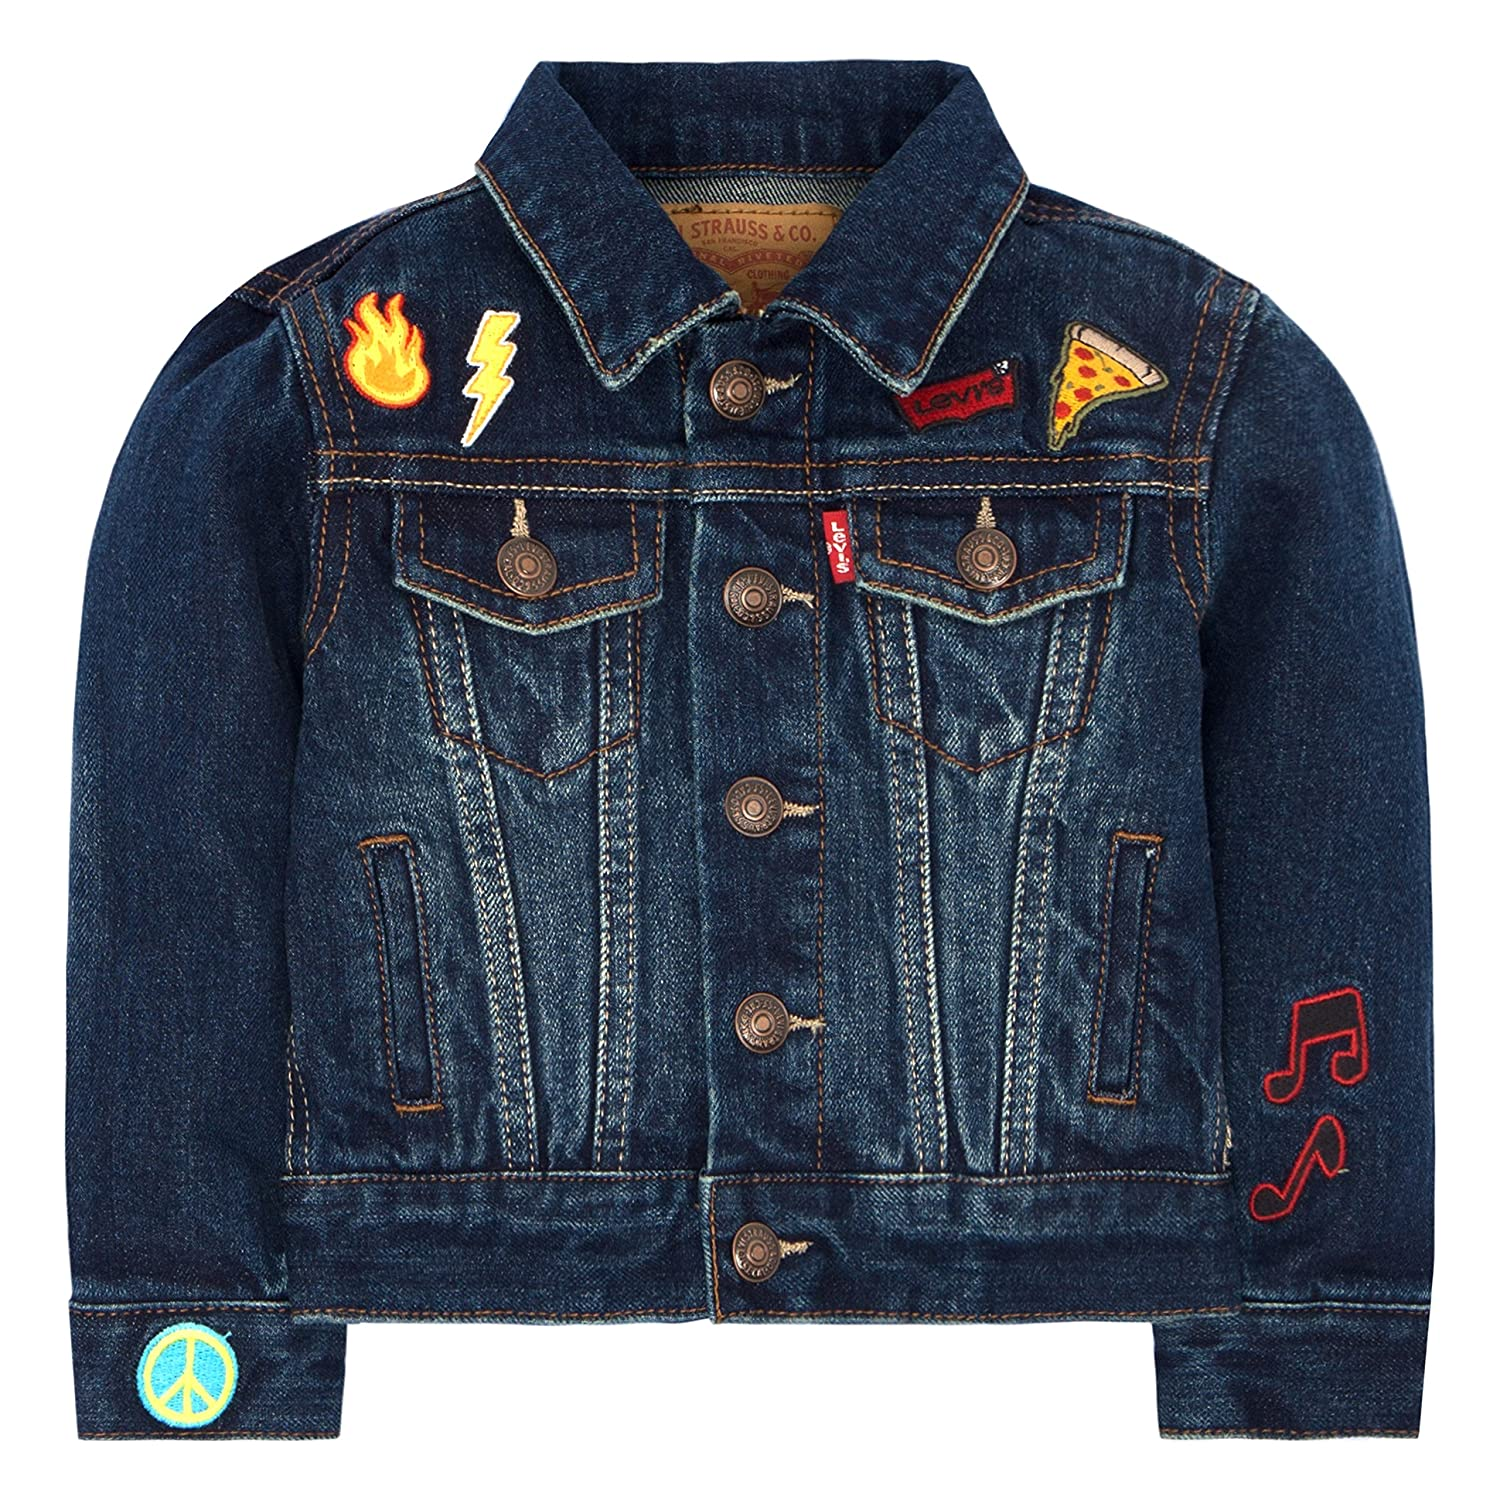 Amazon.com: Levis Baby Boys Denim Trucker Jacket: Clothing